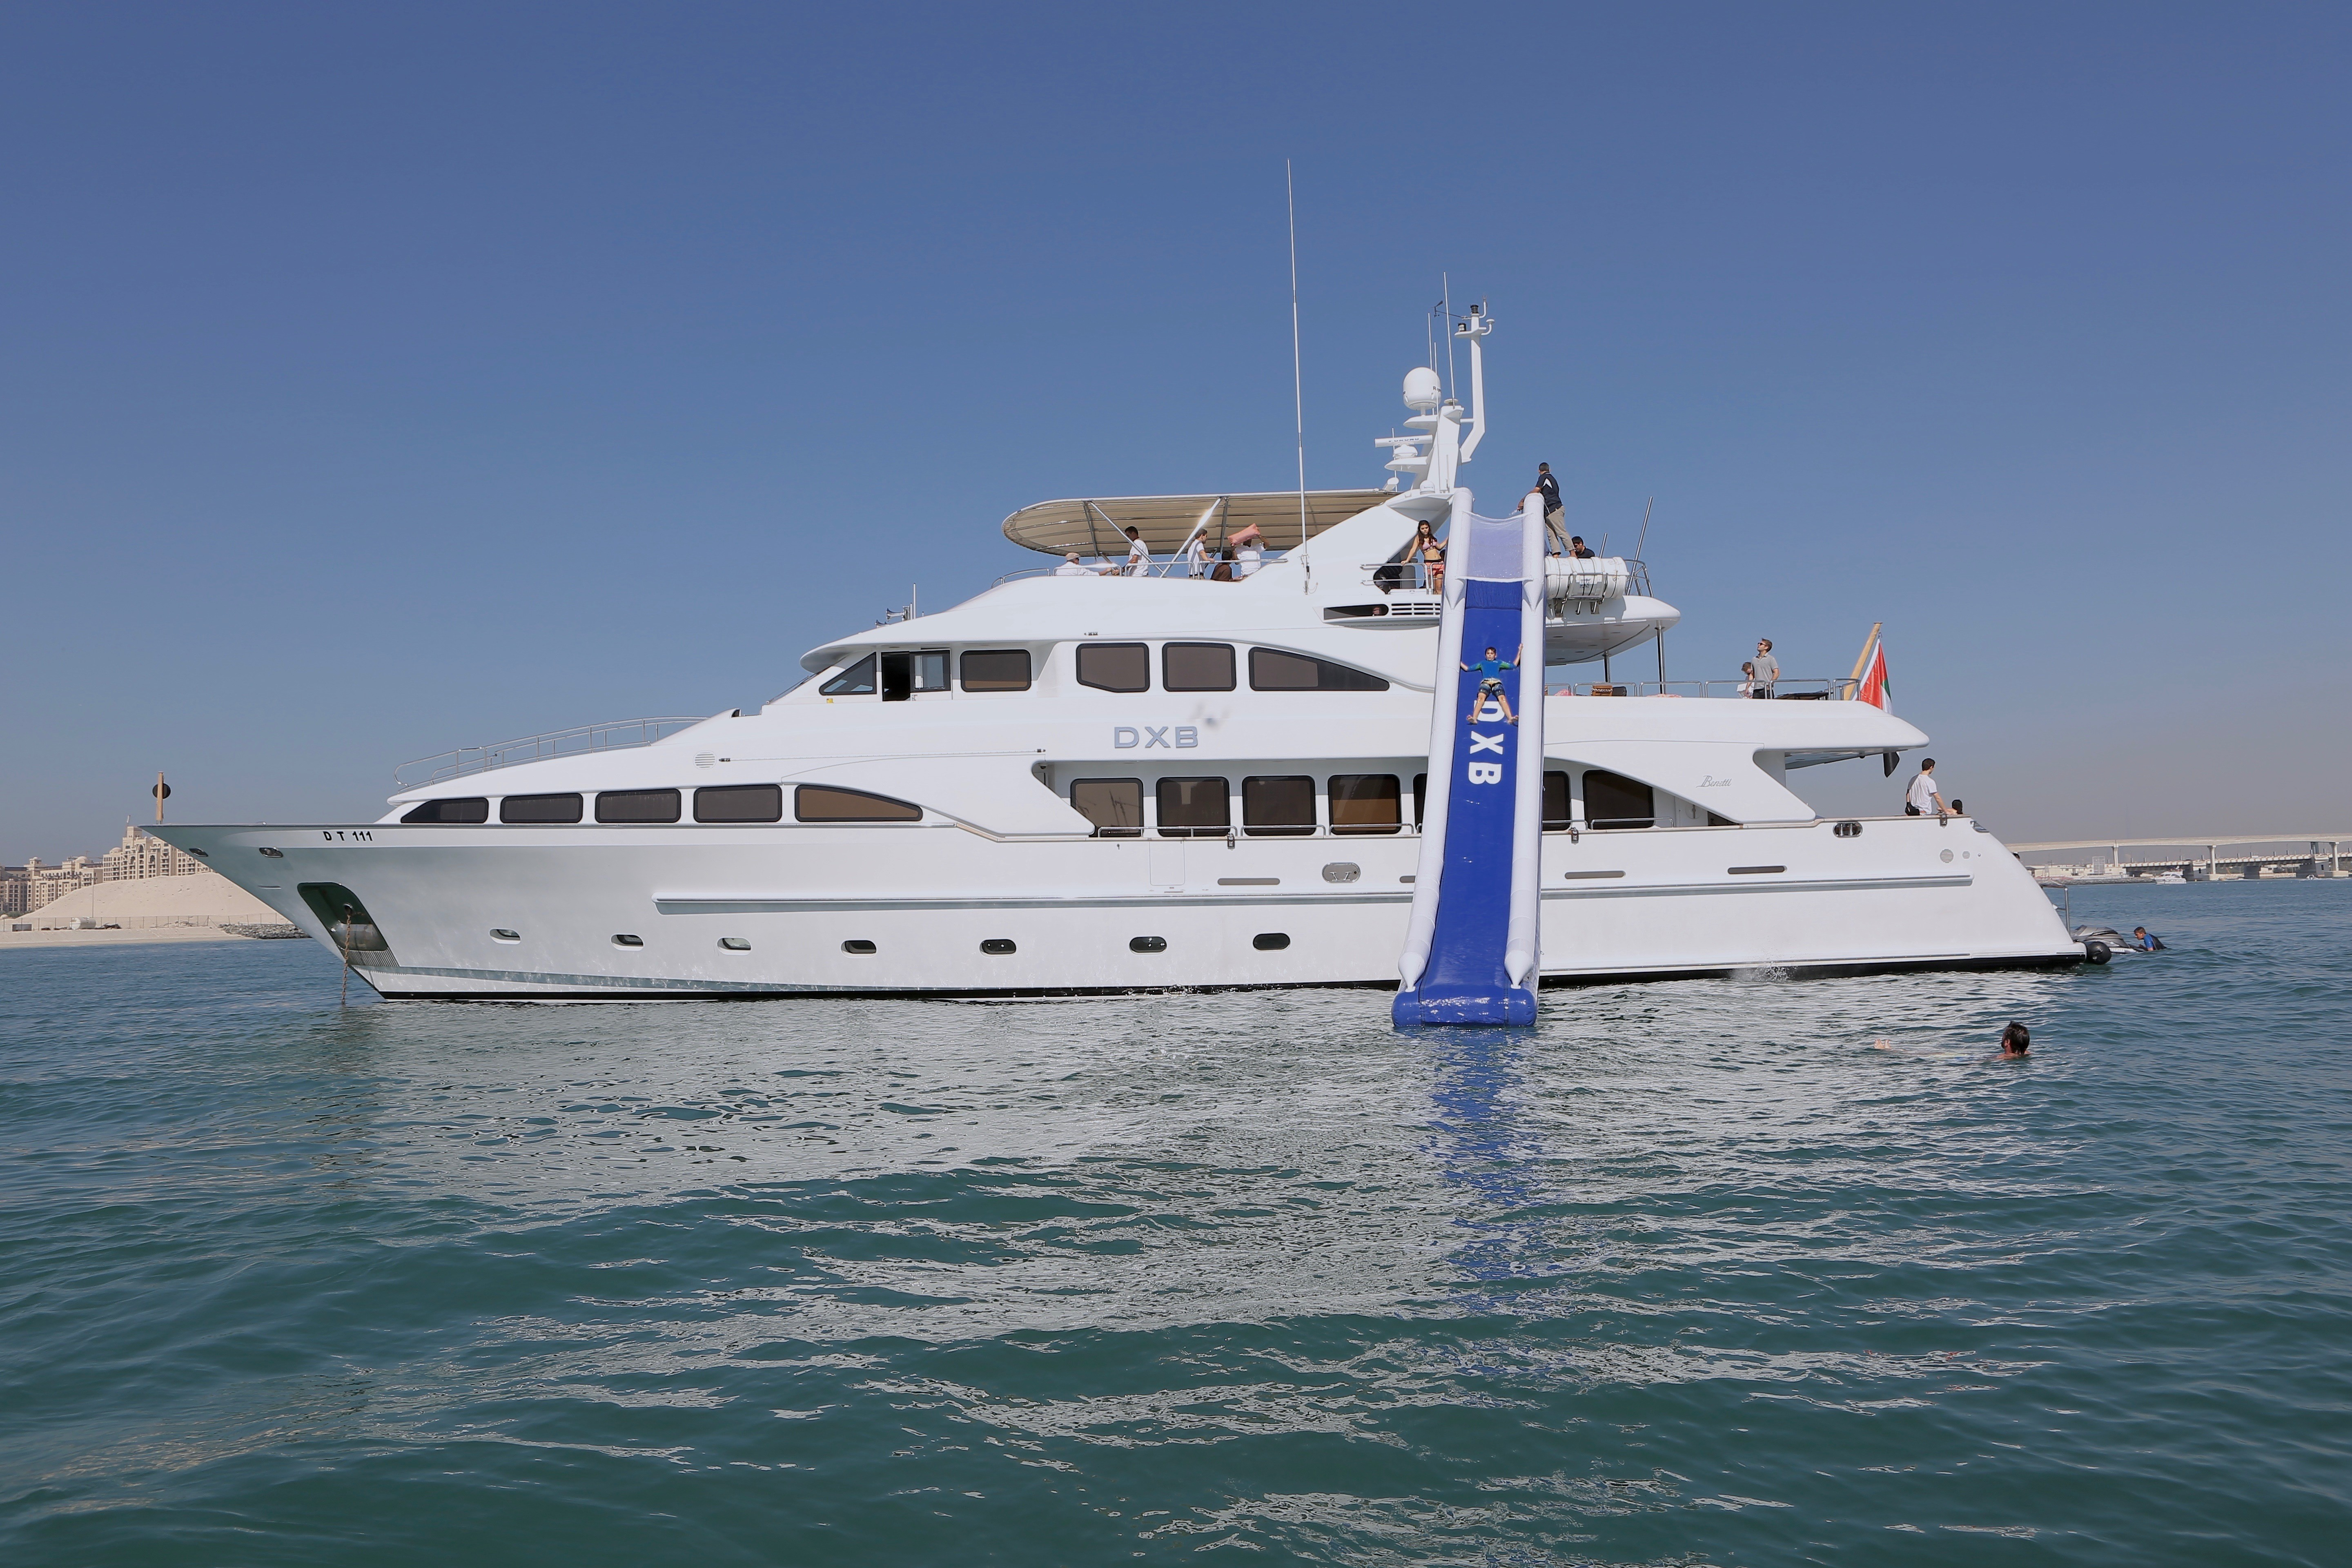 fun on a charter holiday with DBX yacht by Benetti